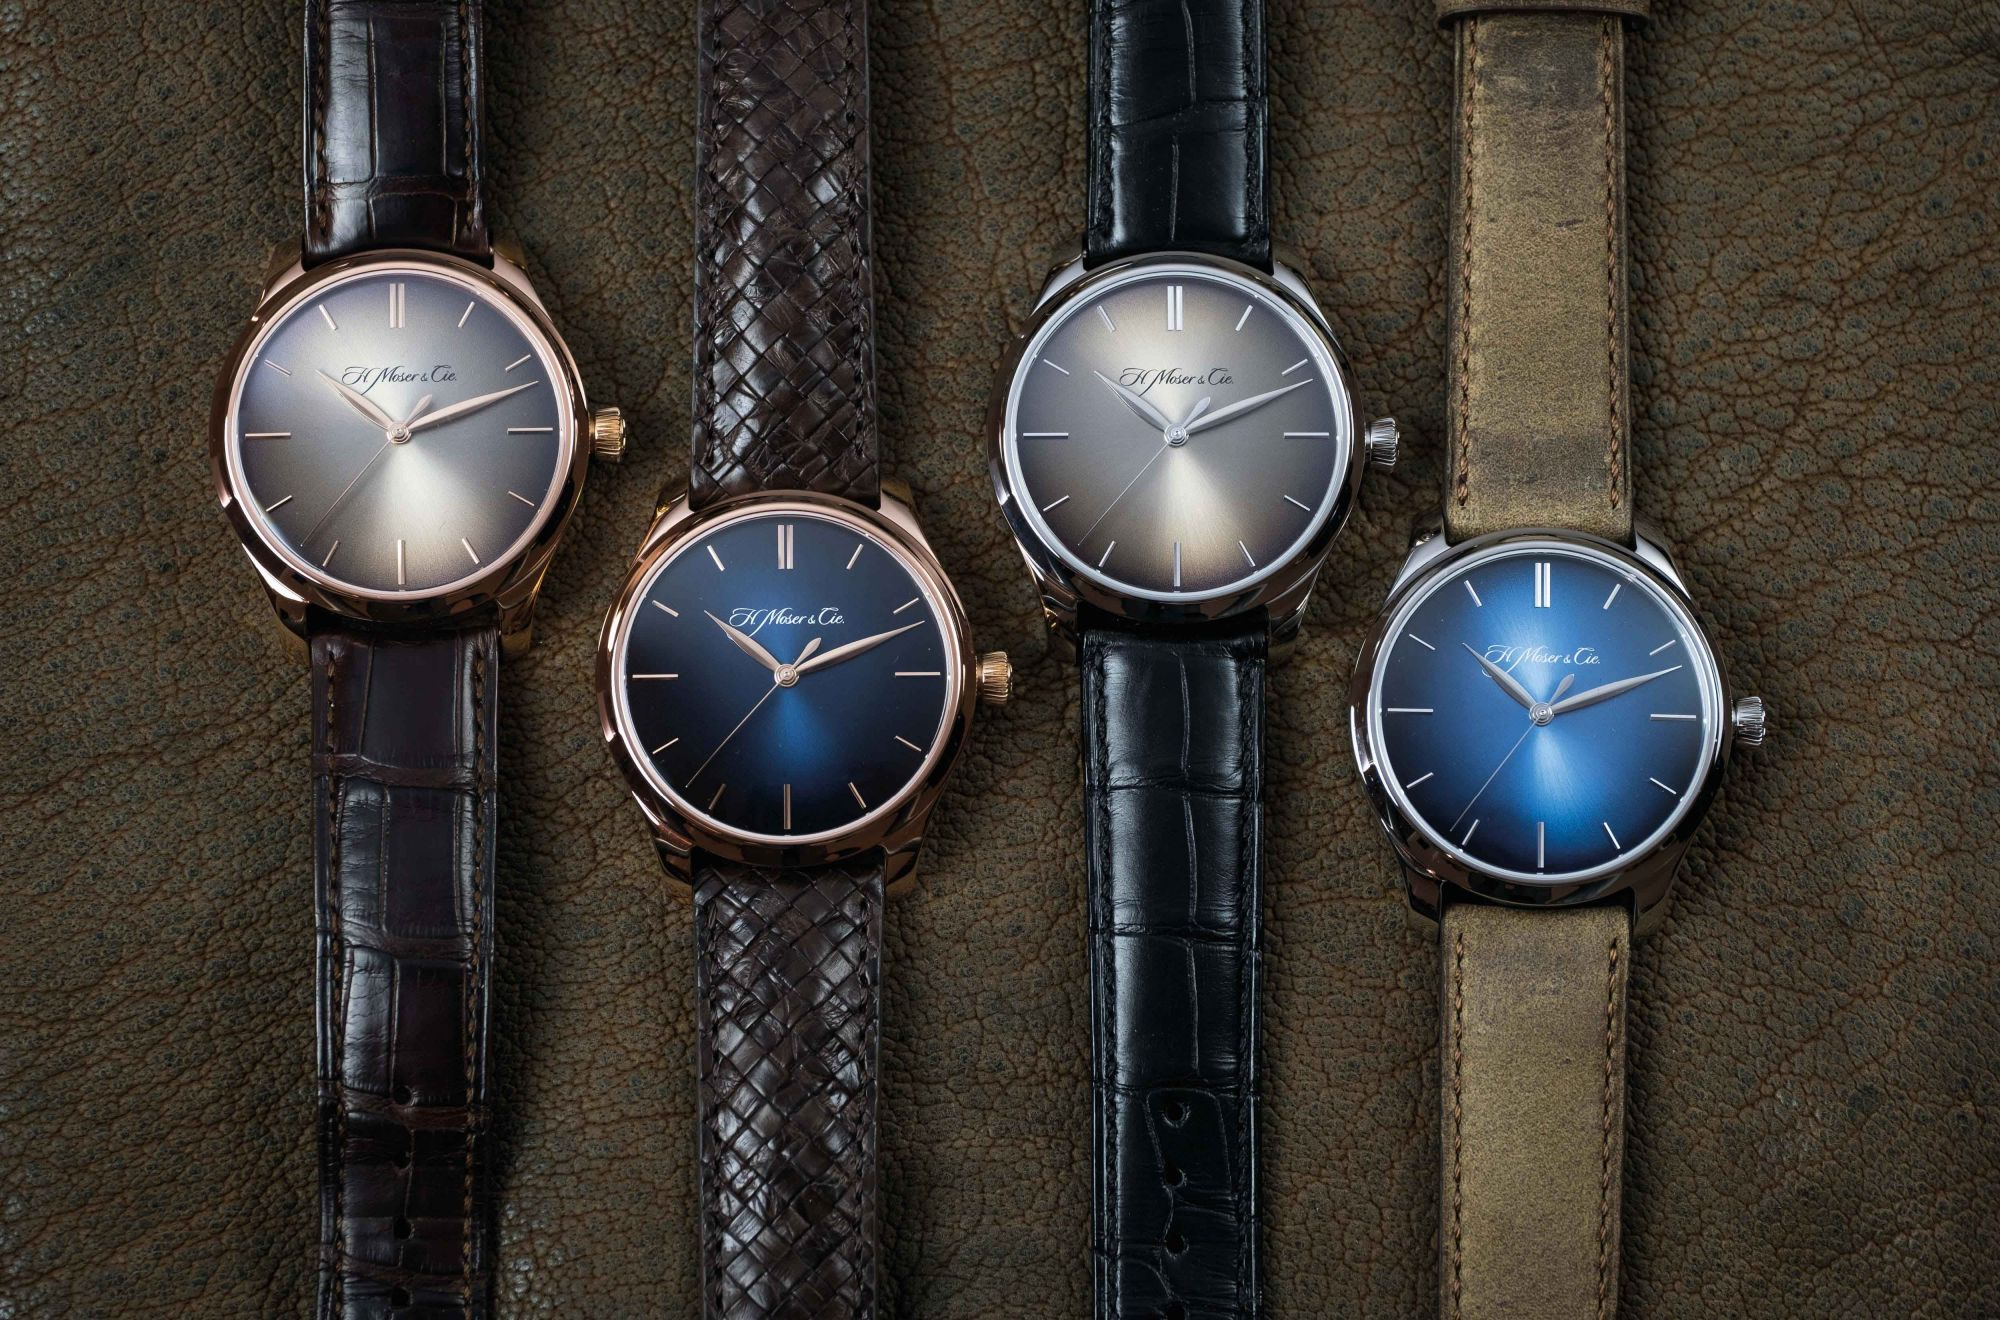 Travels In Time: The Inspiring History Behind H Moser & Cie